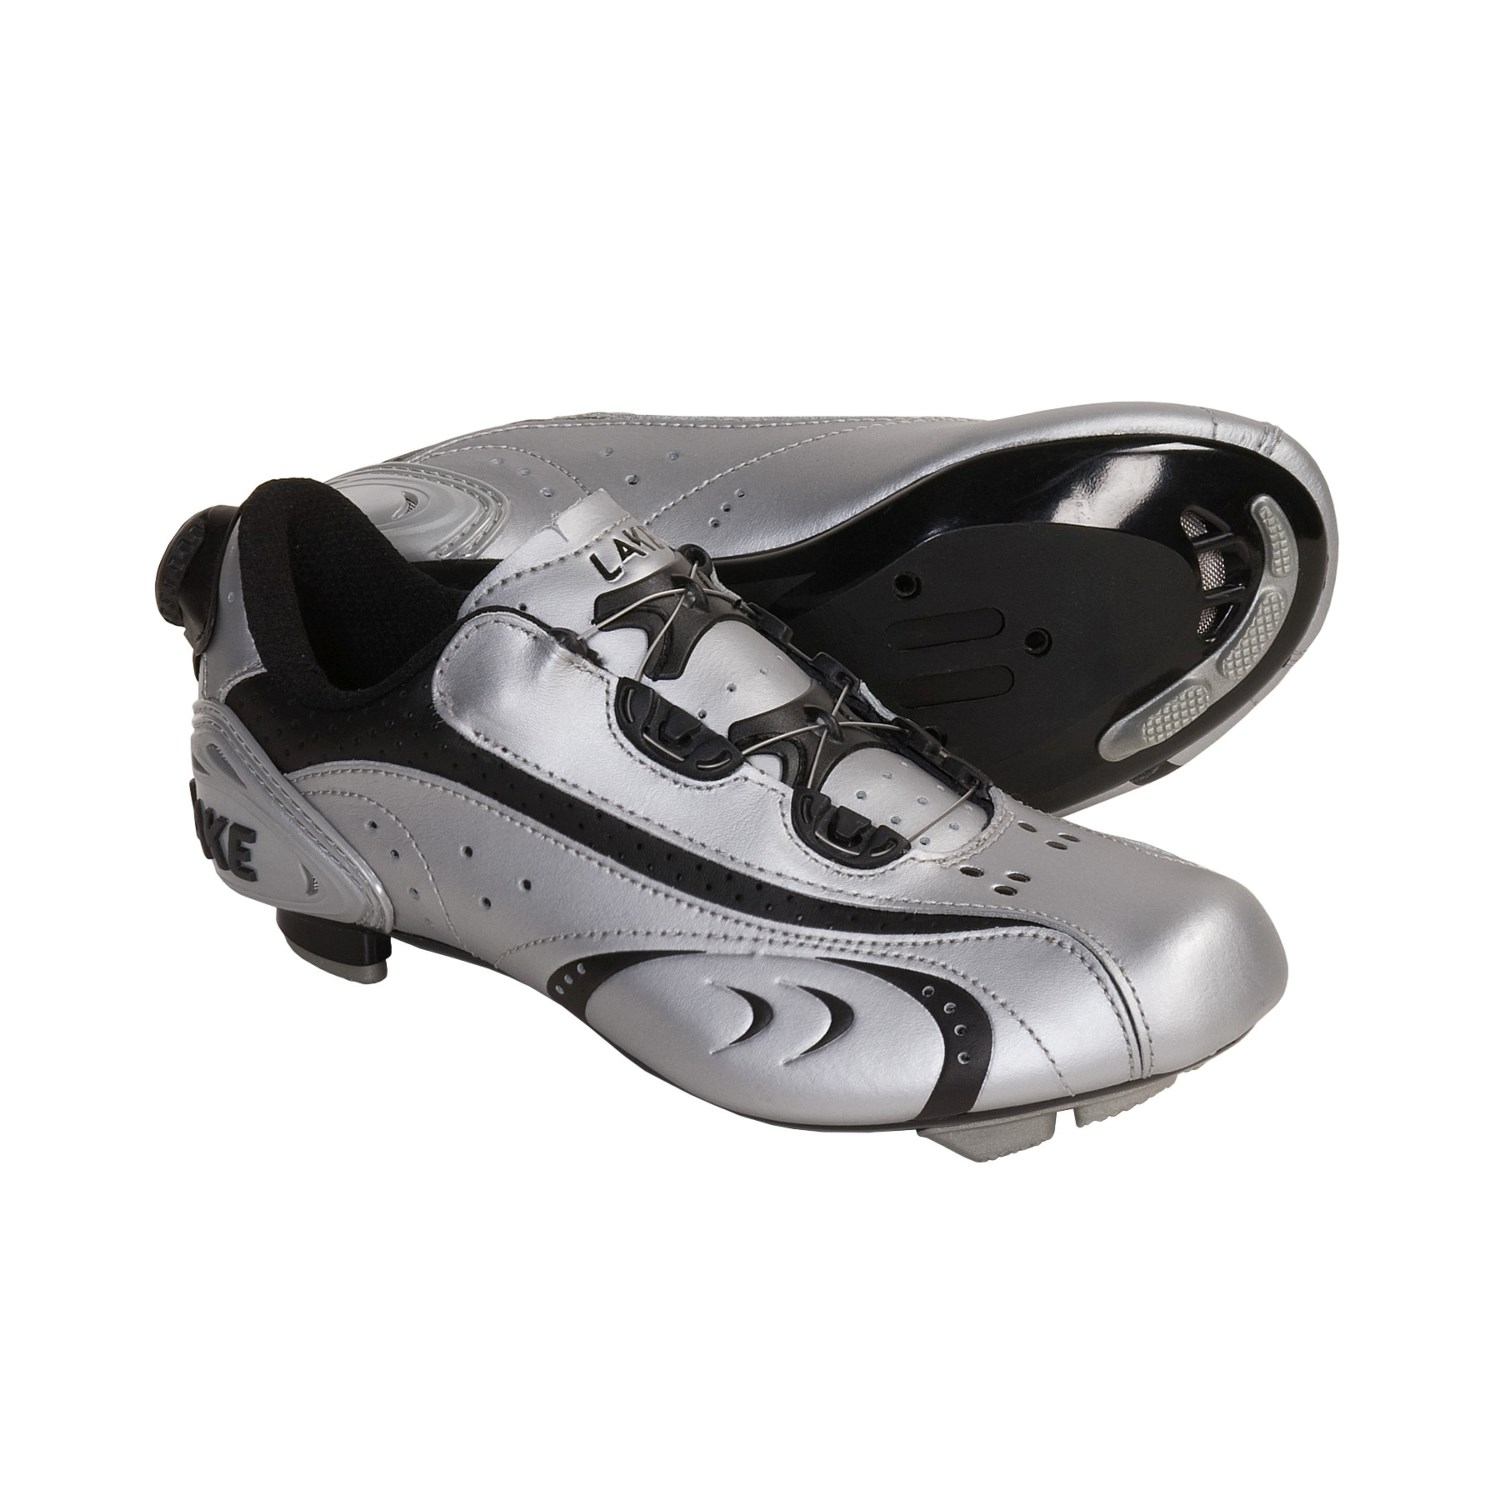 If you'd like a pair of these, plan on going back in time: this Challenge mountain bike shoe